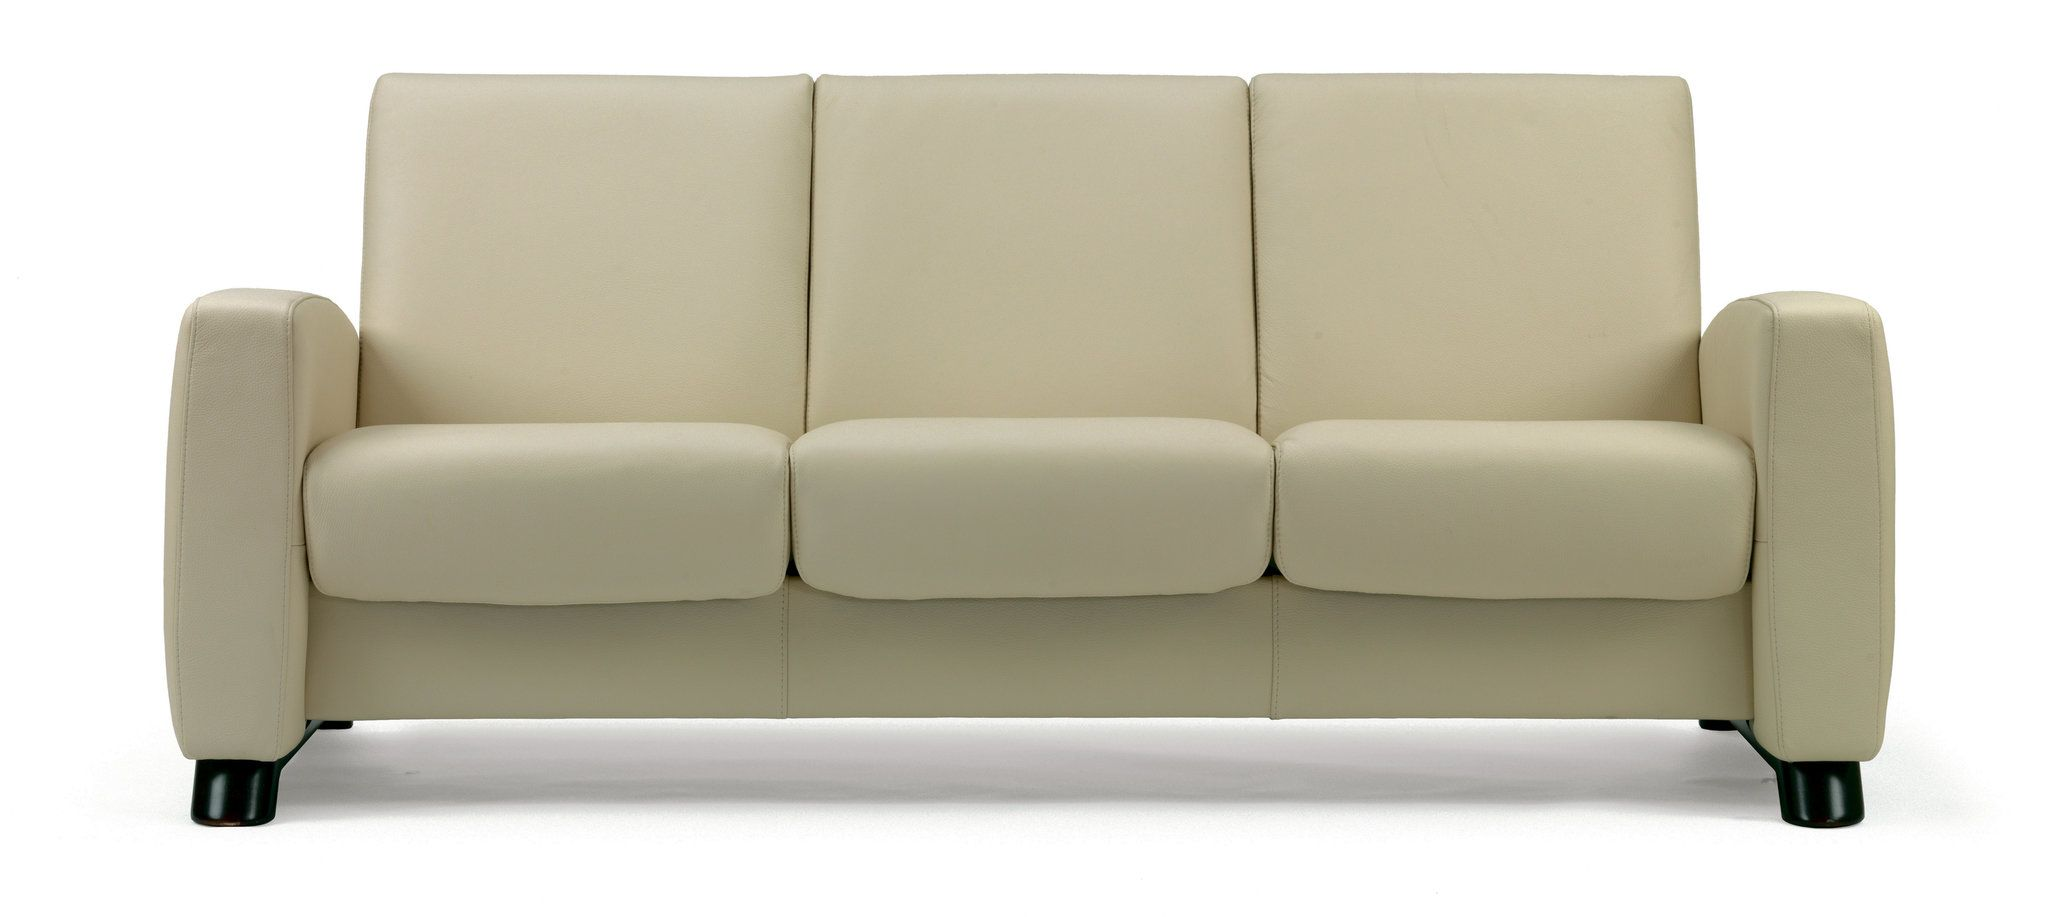 The Ergonomic Sofa Nytimes